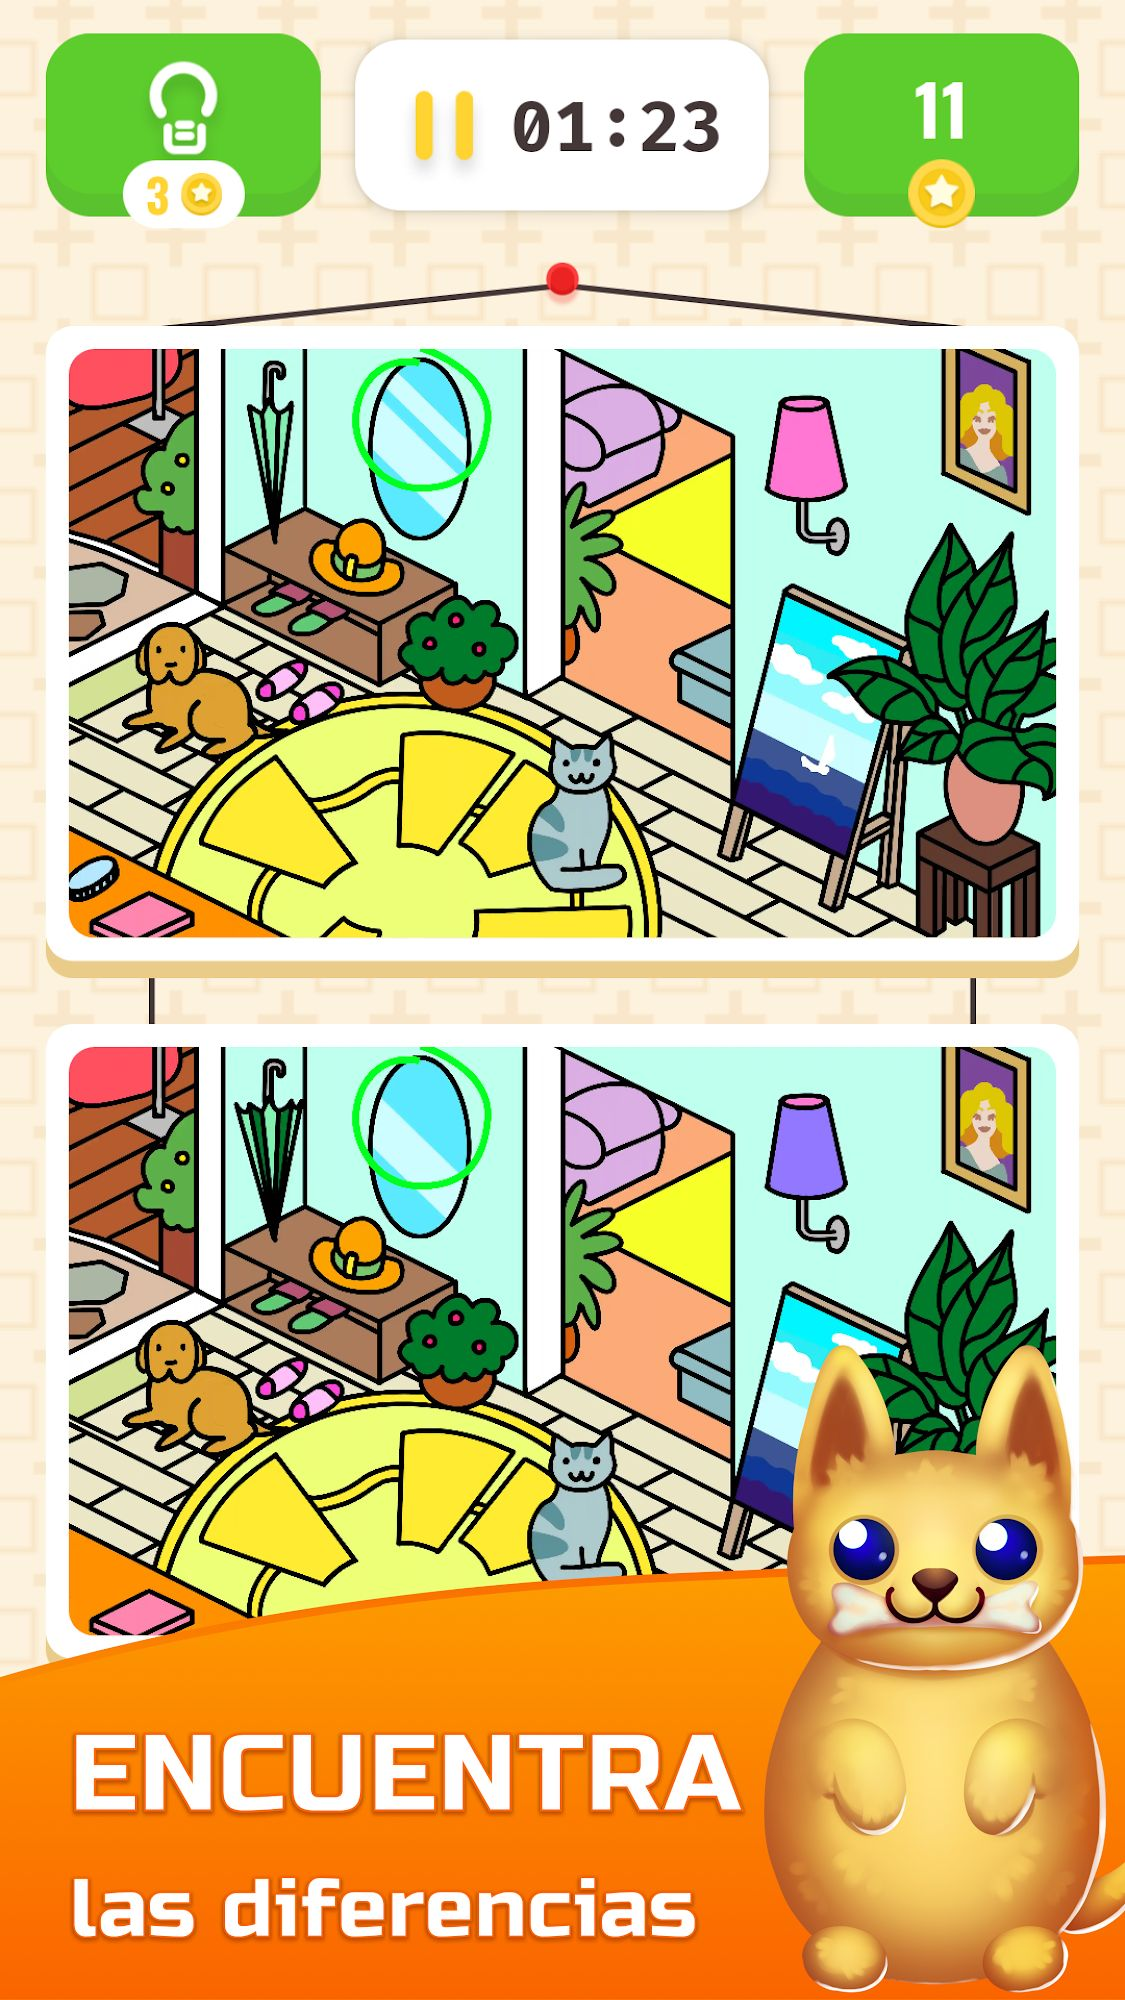 Roomspector - Find the differences para Android